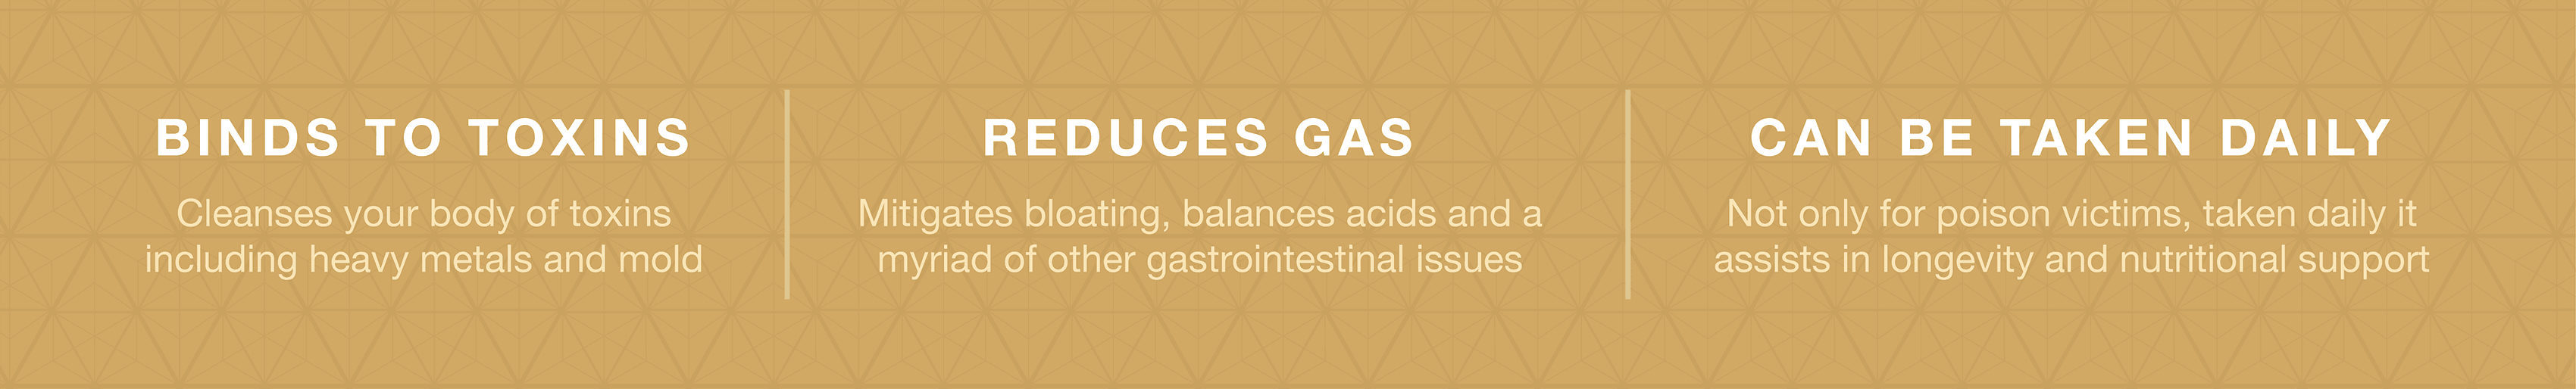 Binds to toxins, reduces gas, and can be taken daily.